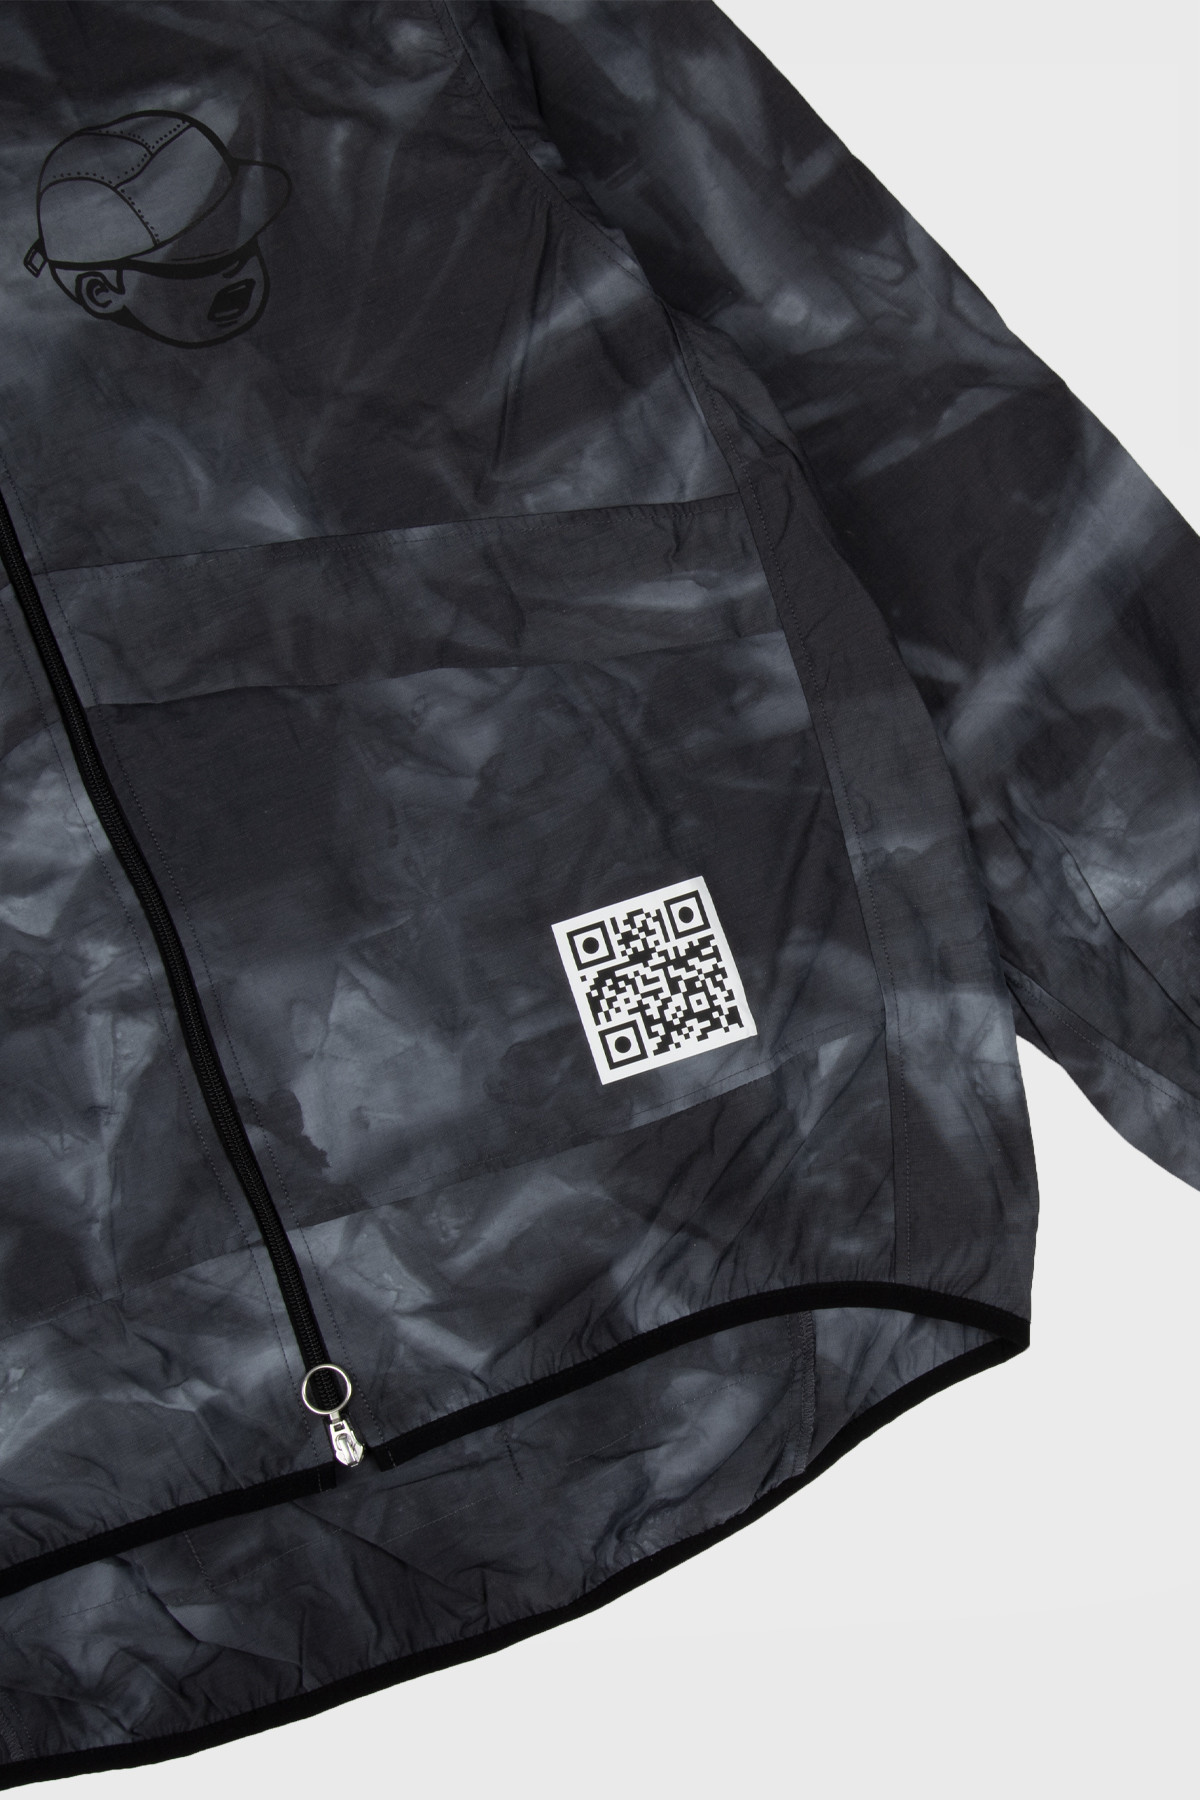 PaperBoy - Running Jacket - Black